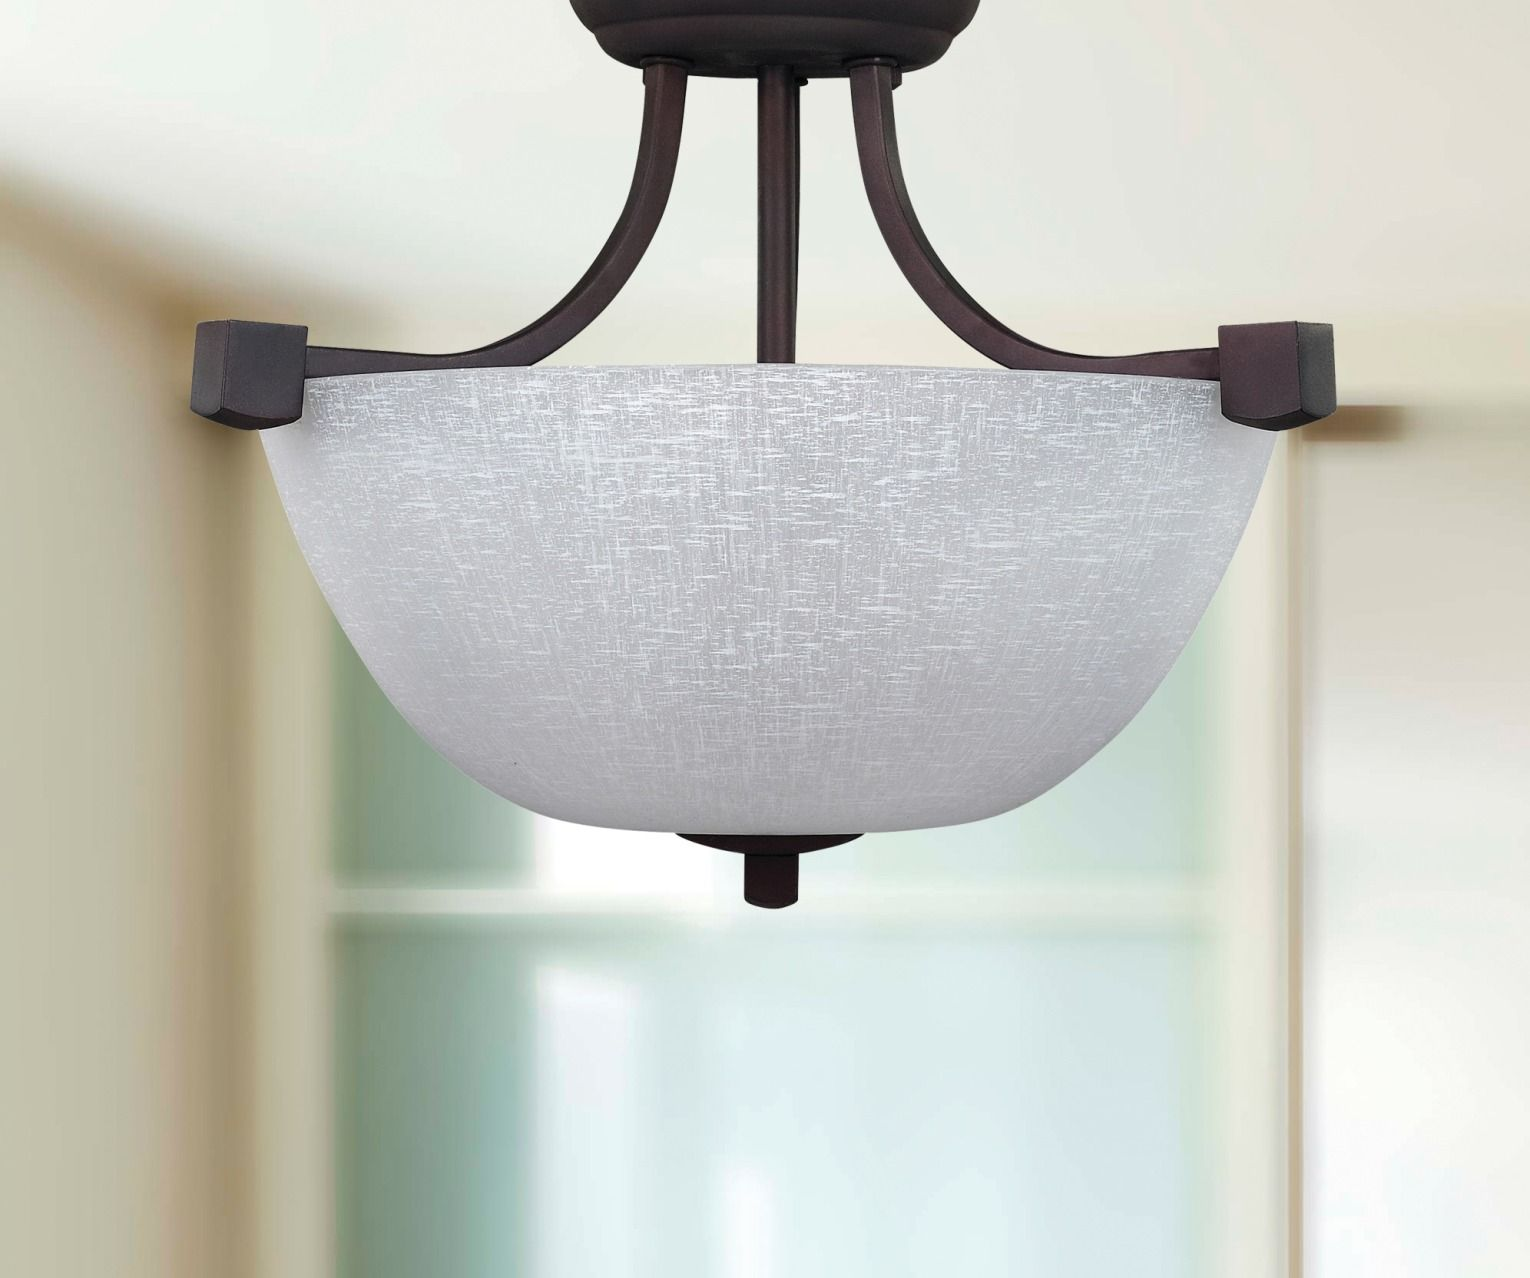 Sleek and simple, the Grenadier 3-Light Semi-Flushmount Ceiling Light adds a bold look to any room in your home. This ceiling light elegantly combines angular lines with classic shapes.